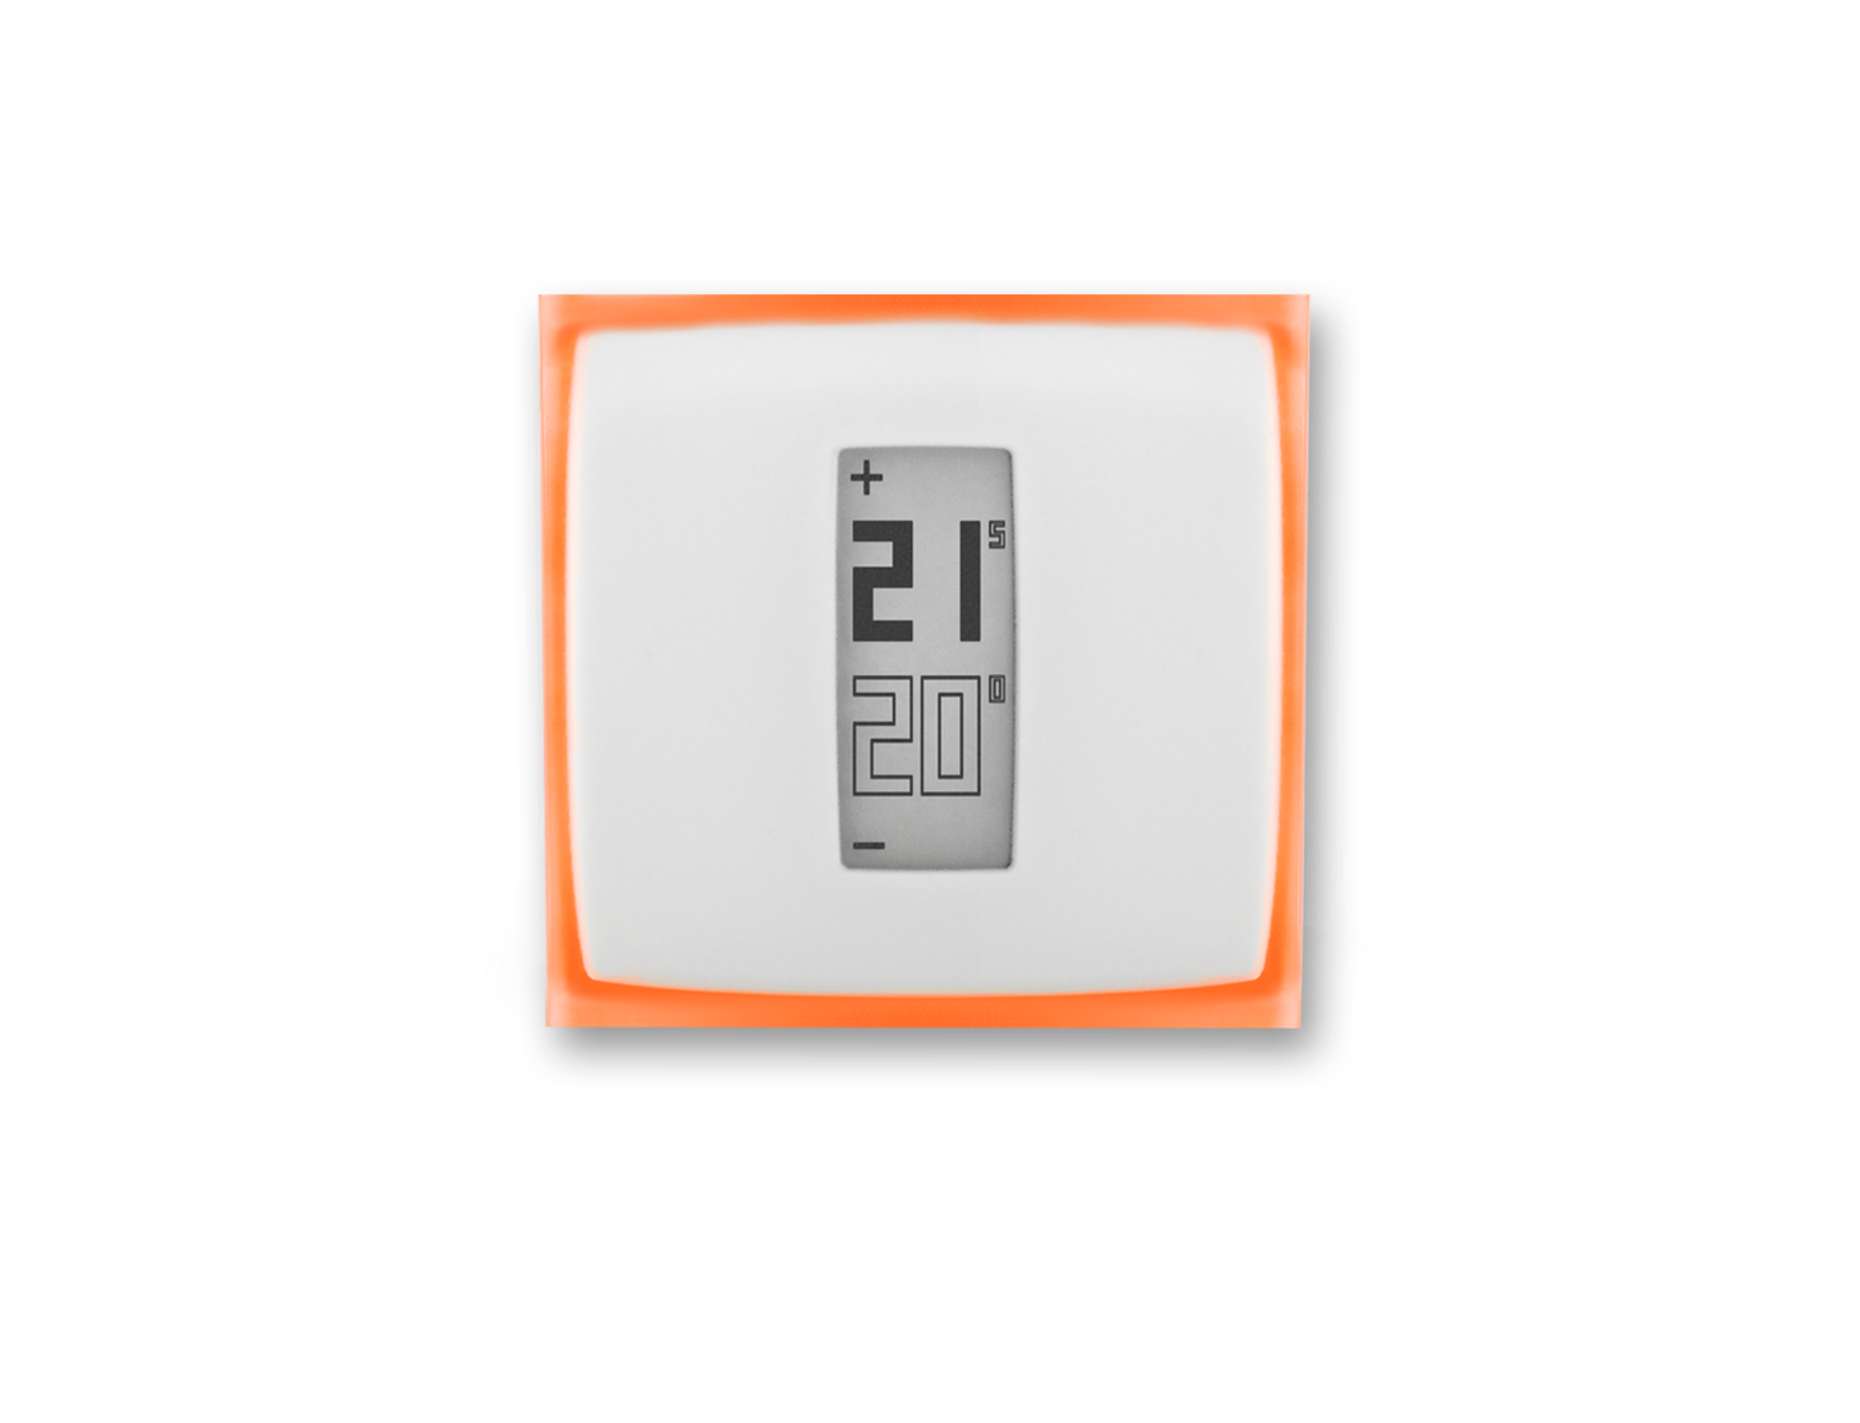 netatmo thermostat connect. Black Bedroom Furniture Sets. Home Design Ideas